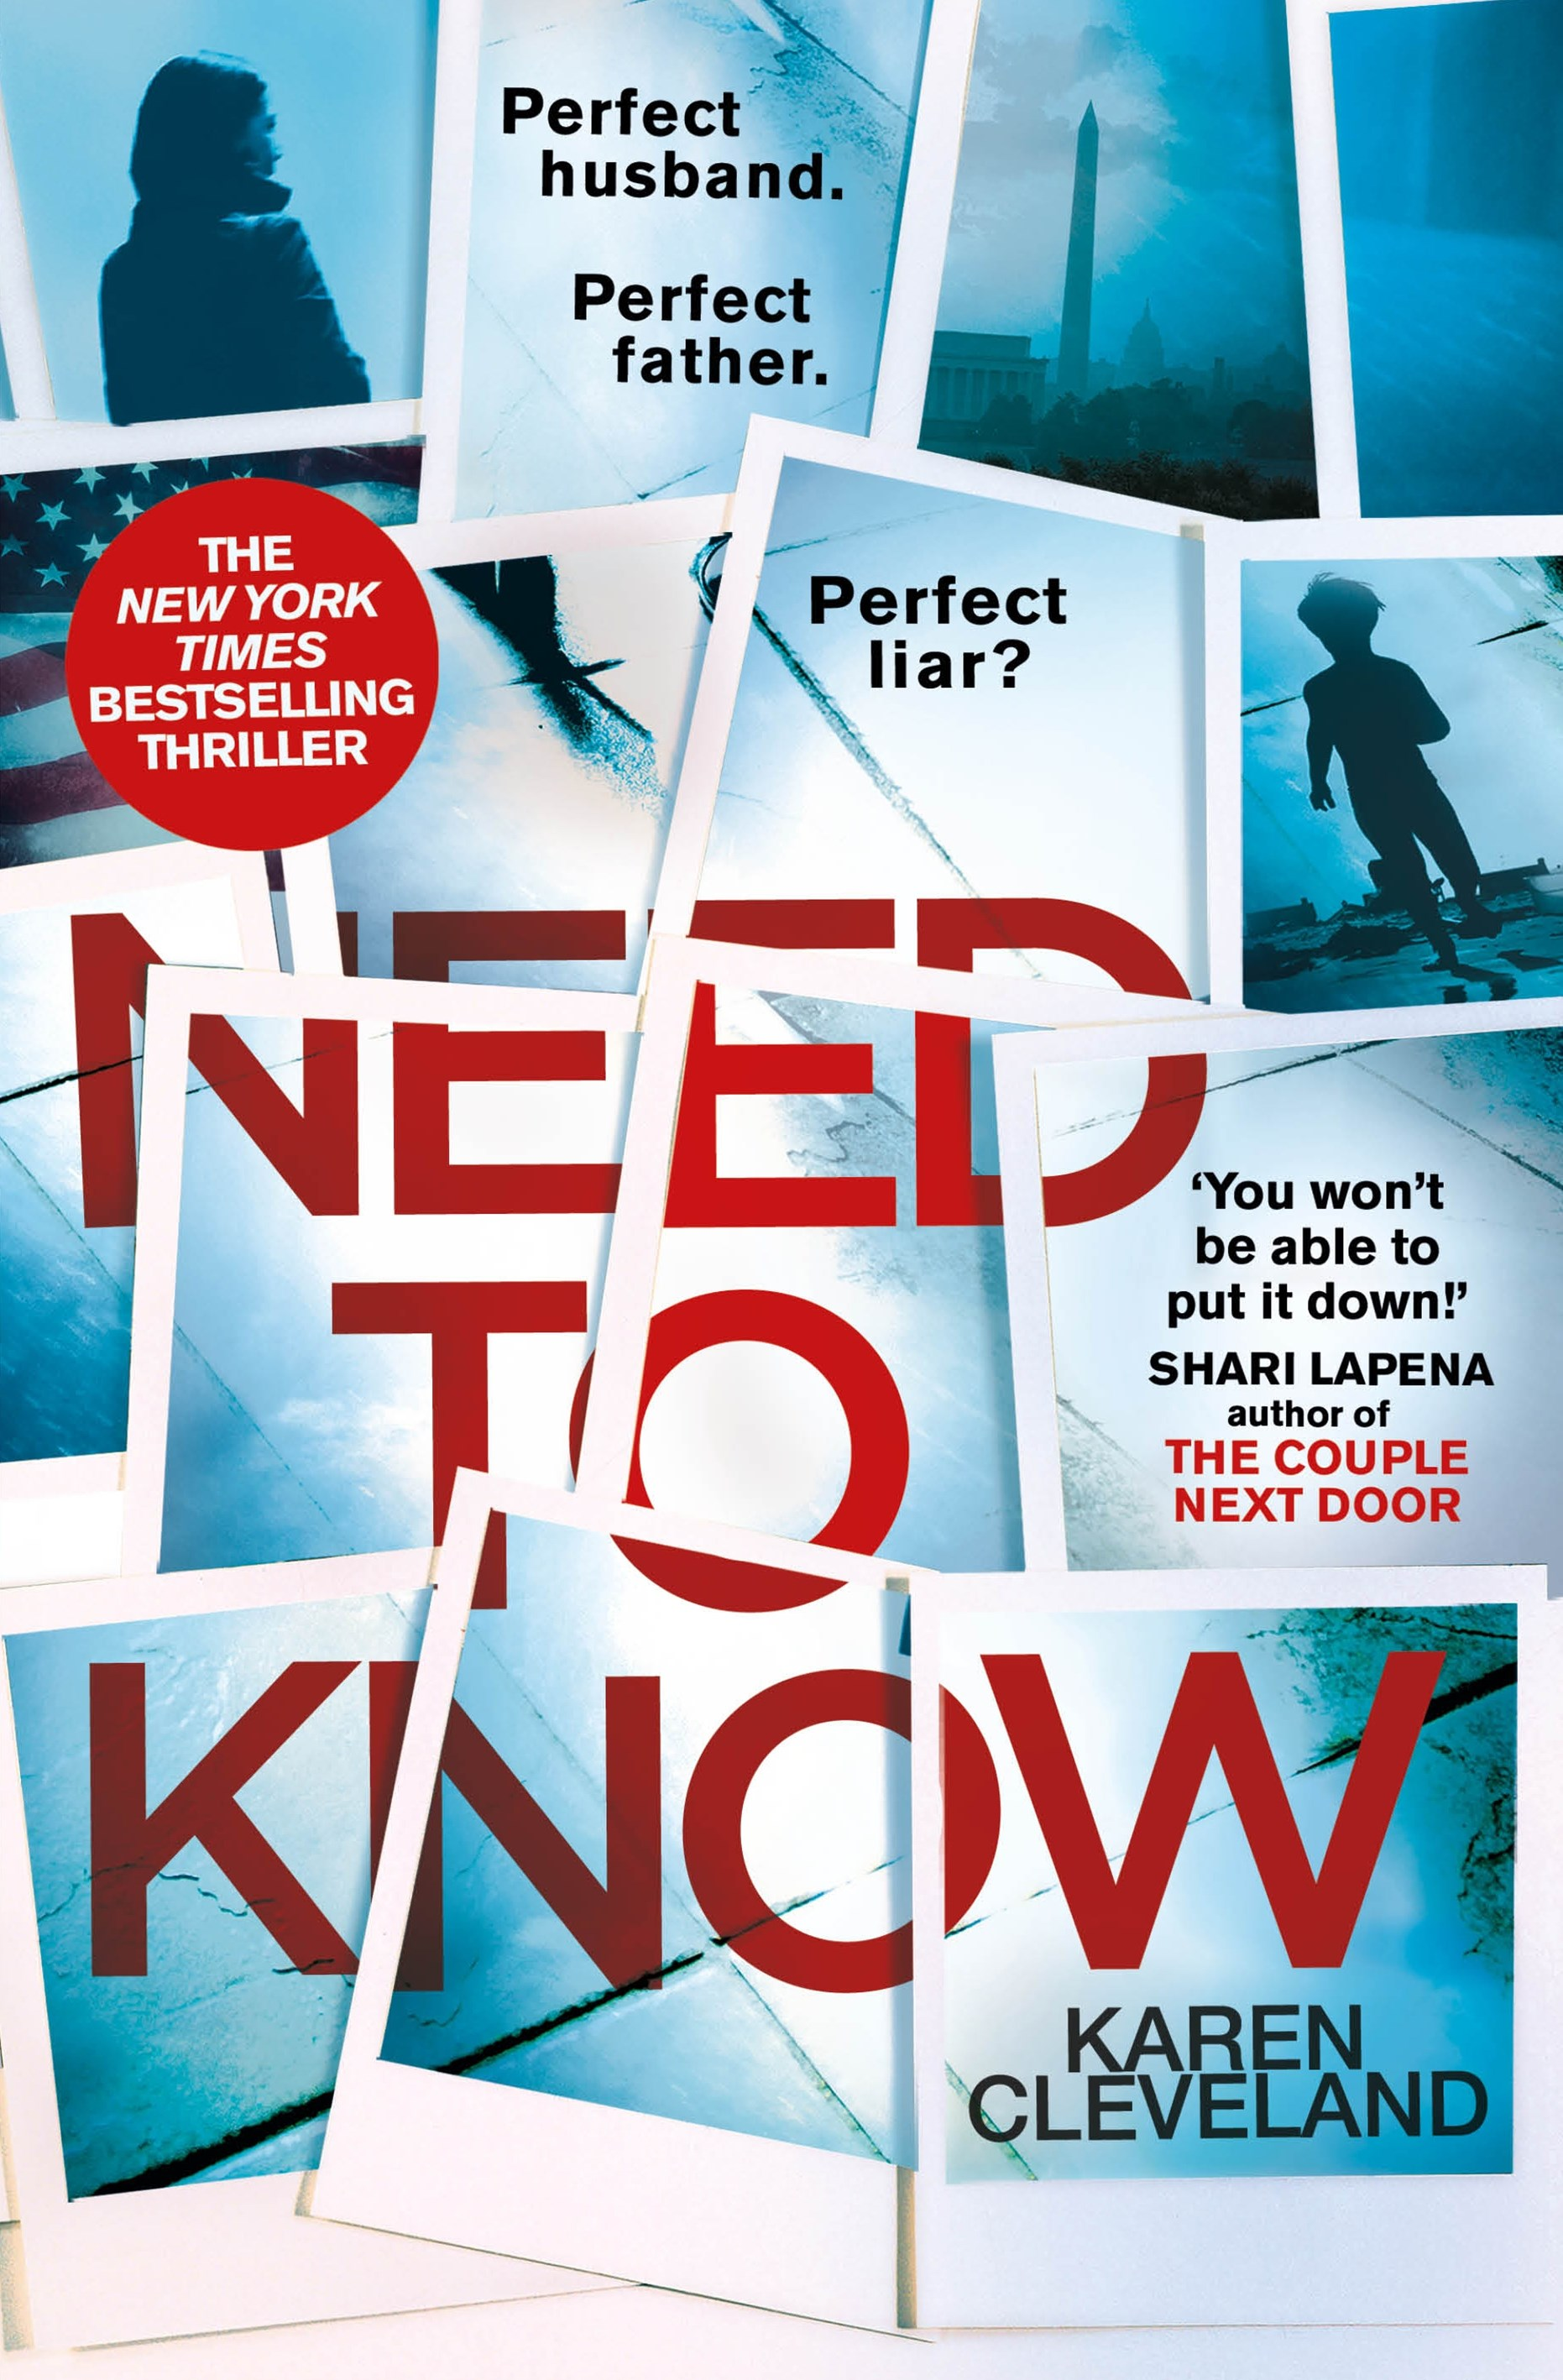 Need To Know: 'You won't be able to put it down!' Shari Lapena, author of THE COUPLE NEXT DOOR